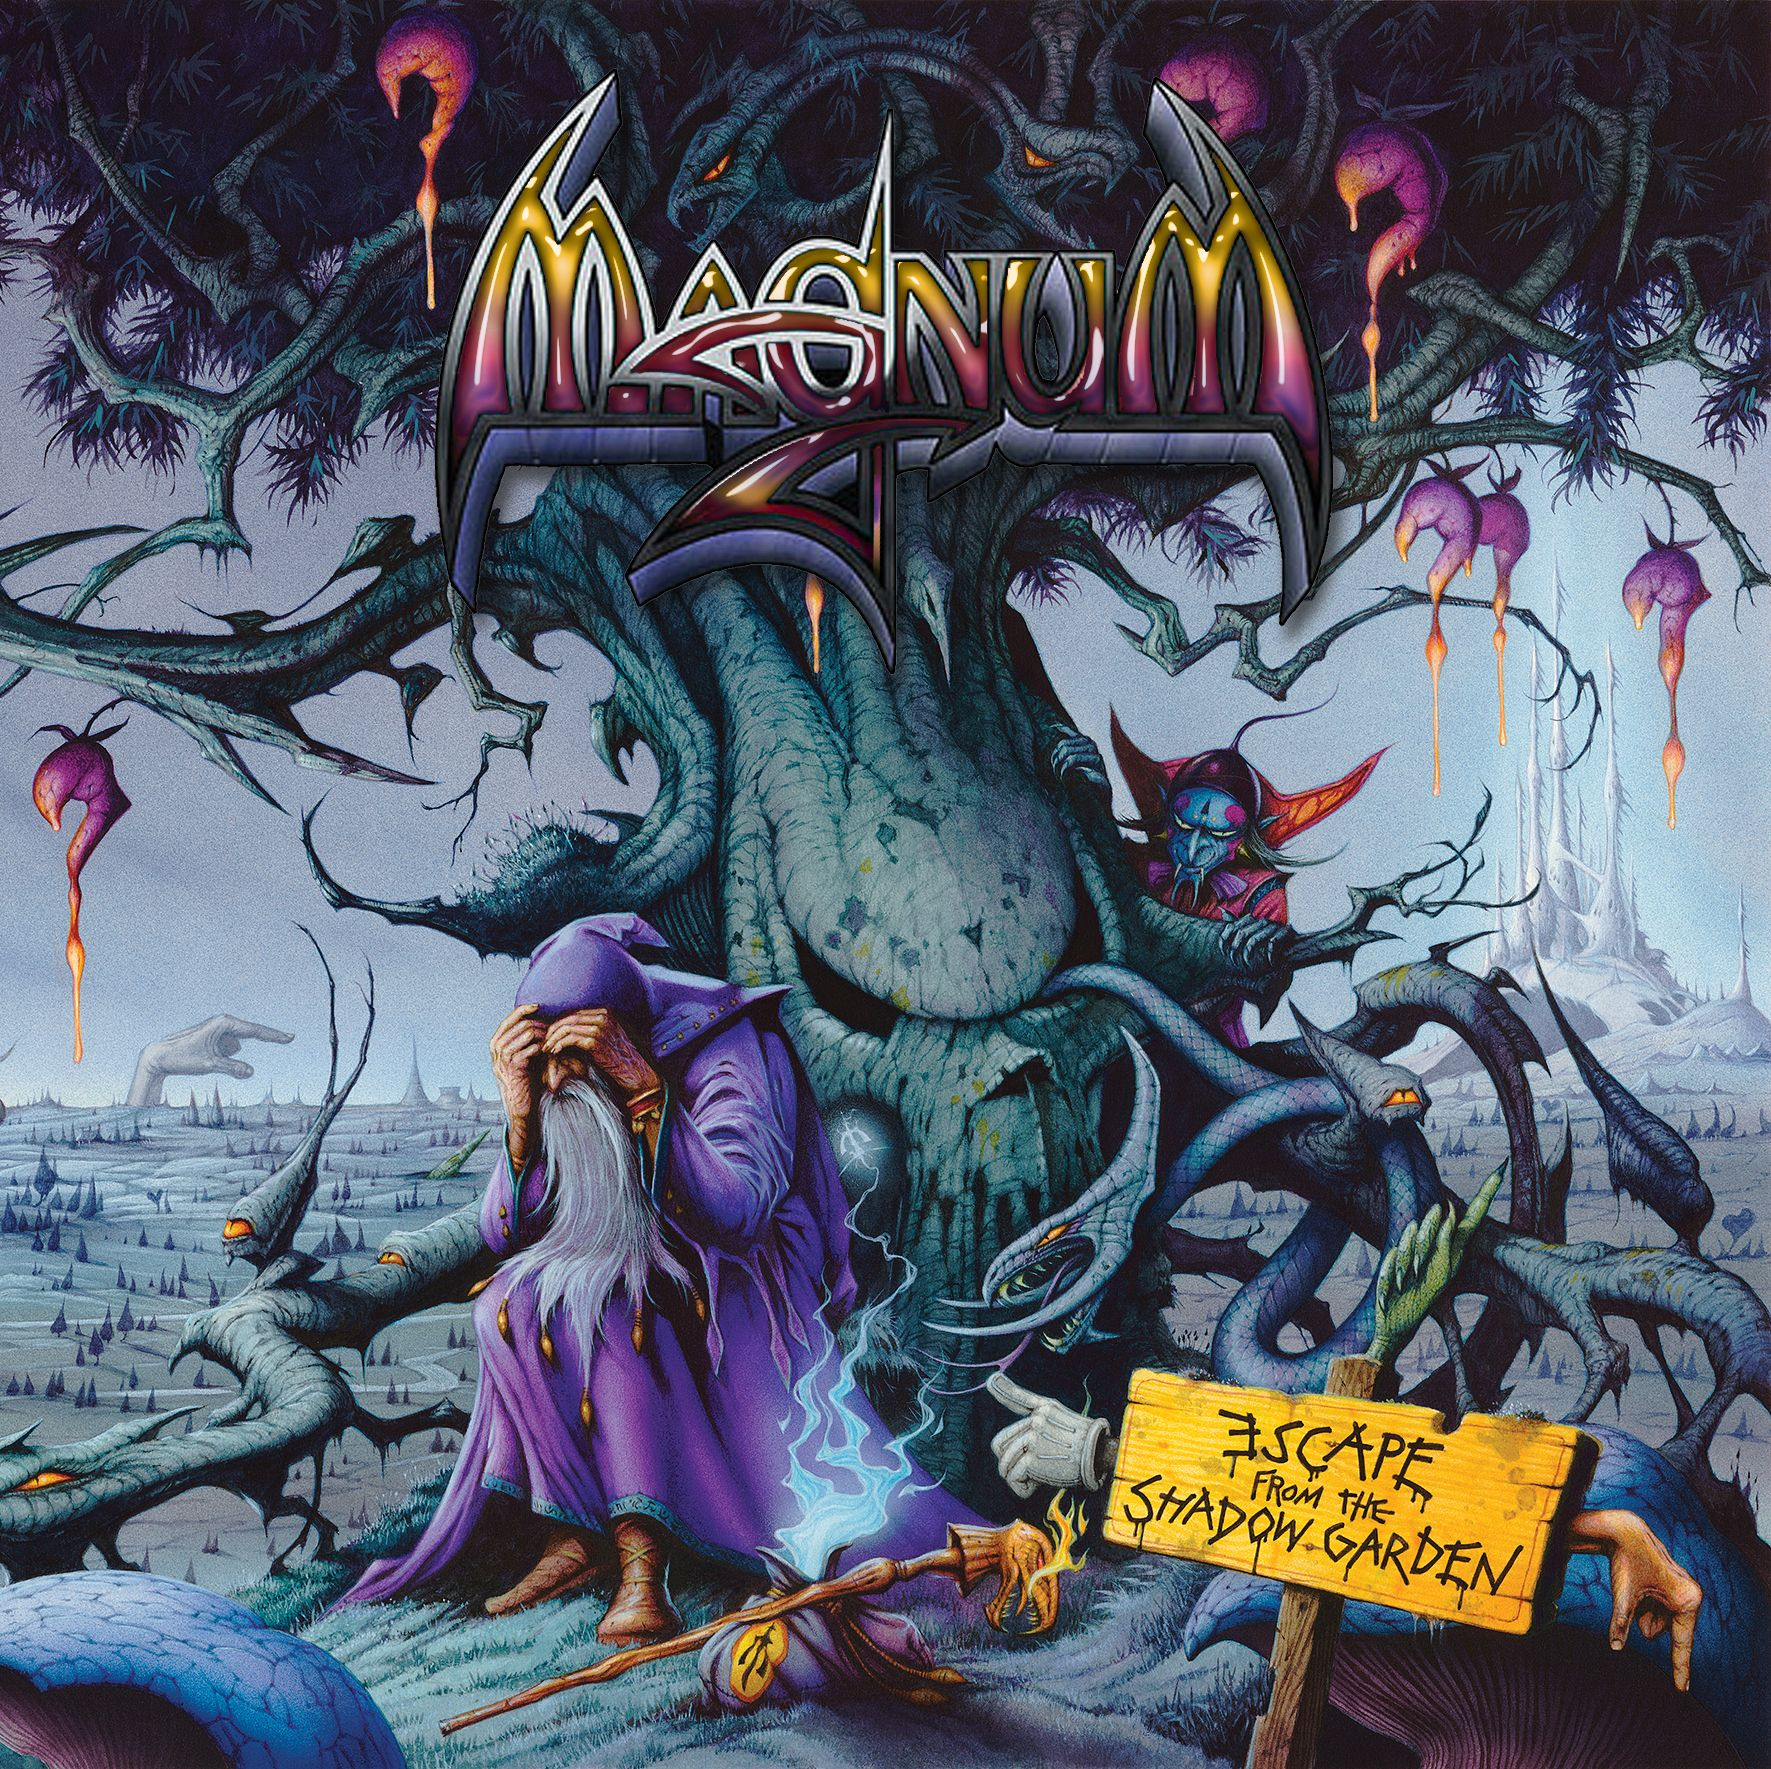 Magnum: Escape from the Shadow Garden